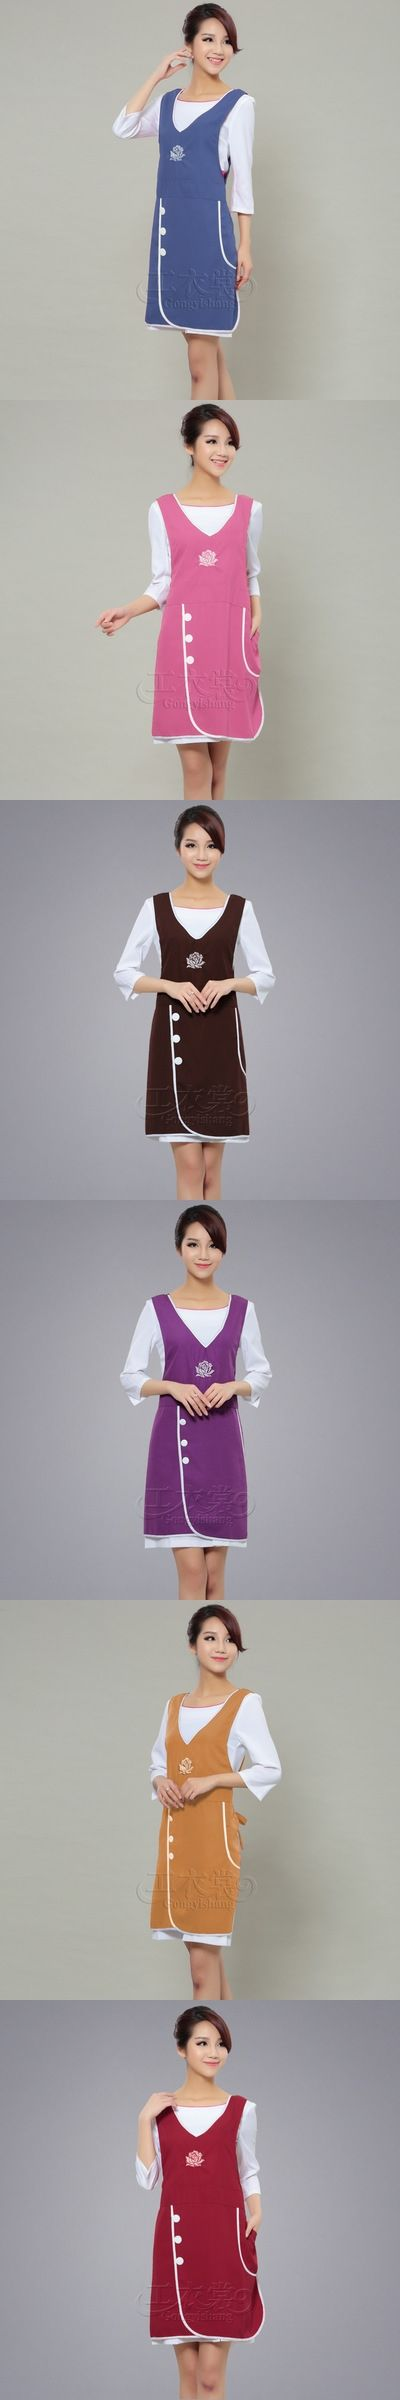 071958 Korean fashion nail shop supermarket restaurant aprons beautician overalls kitchen accessories